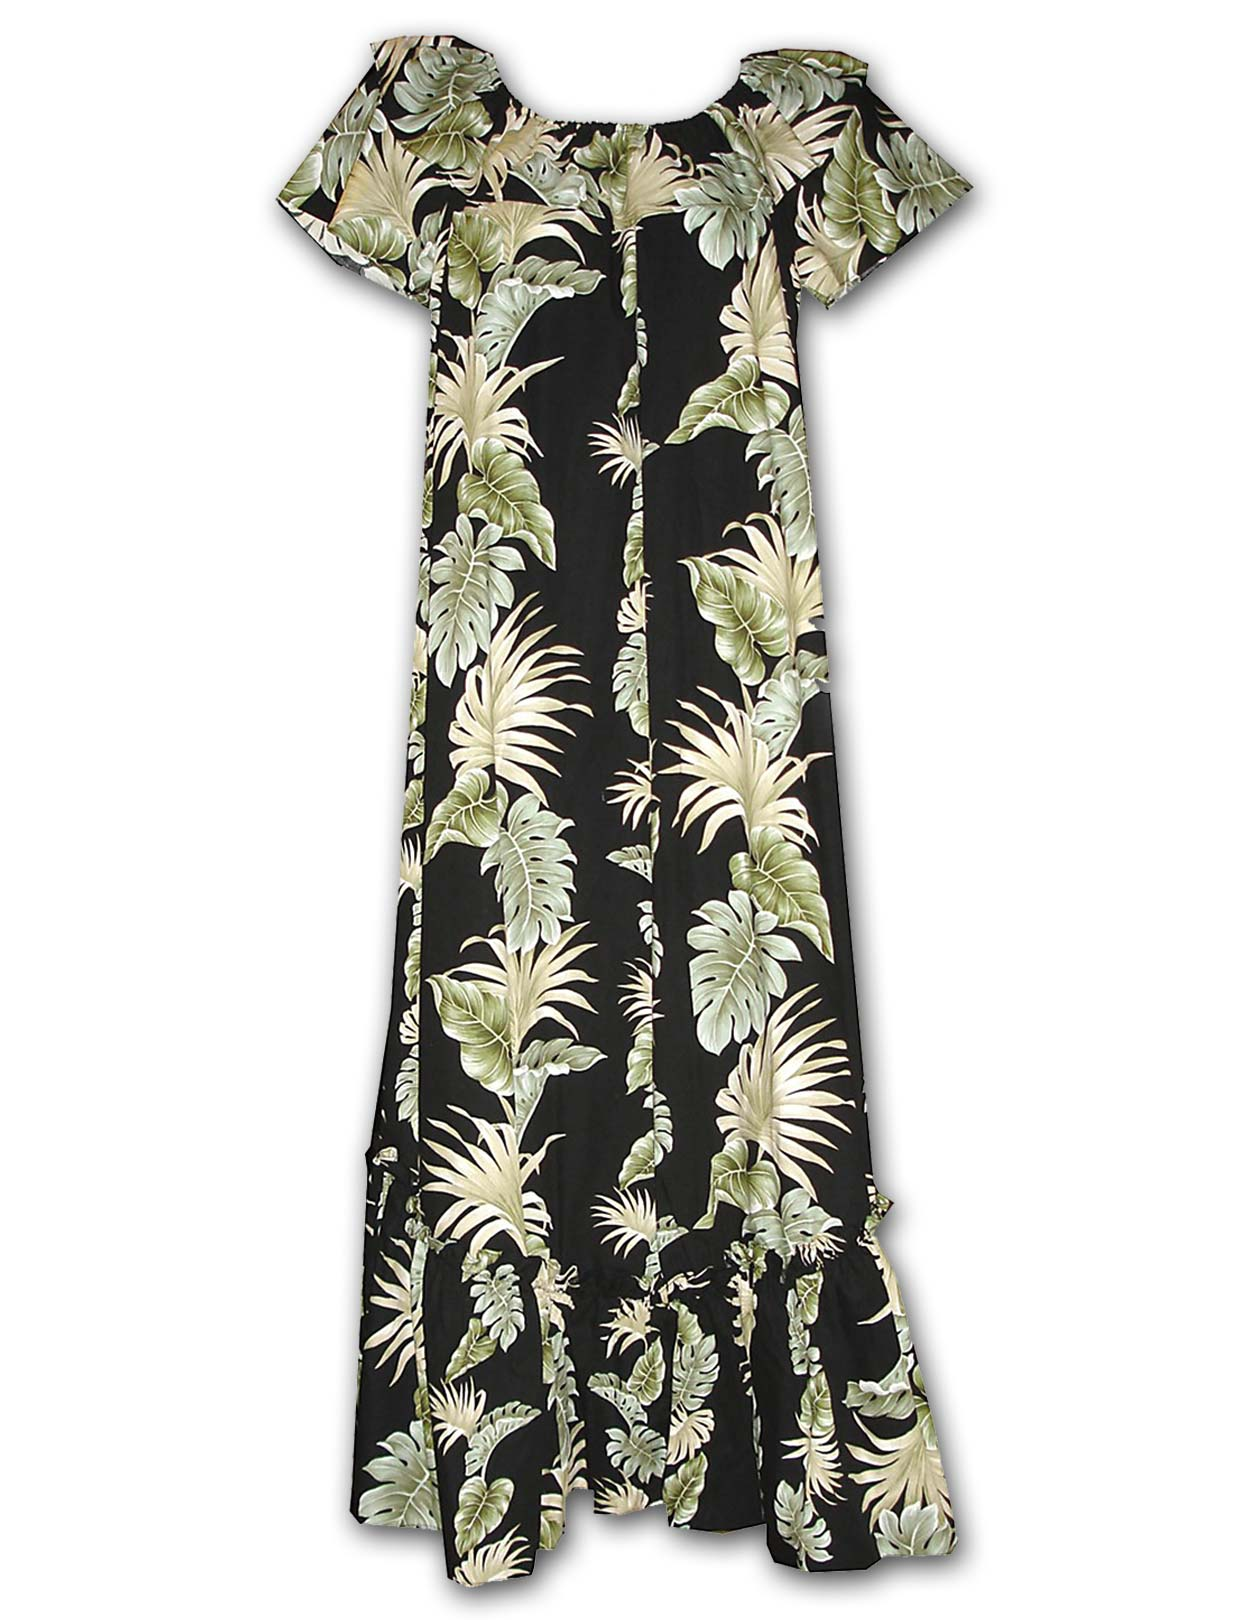 ccec0d9a379c5 Lei of Aloha Long Muumuu Hawaiian Dress: Shaka Time Hawaii Clothing Store